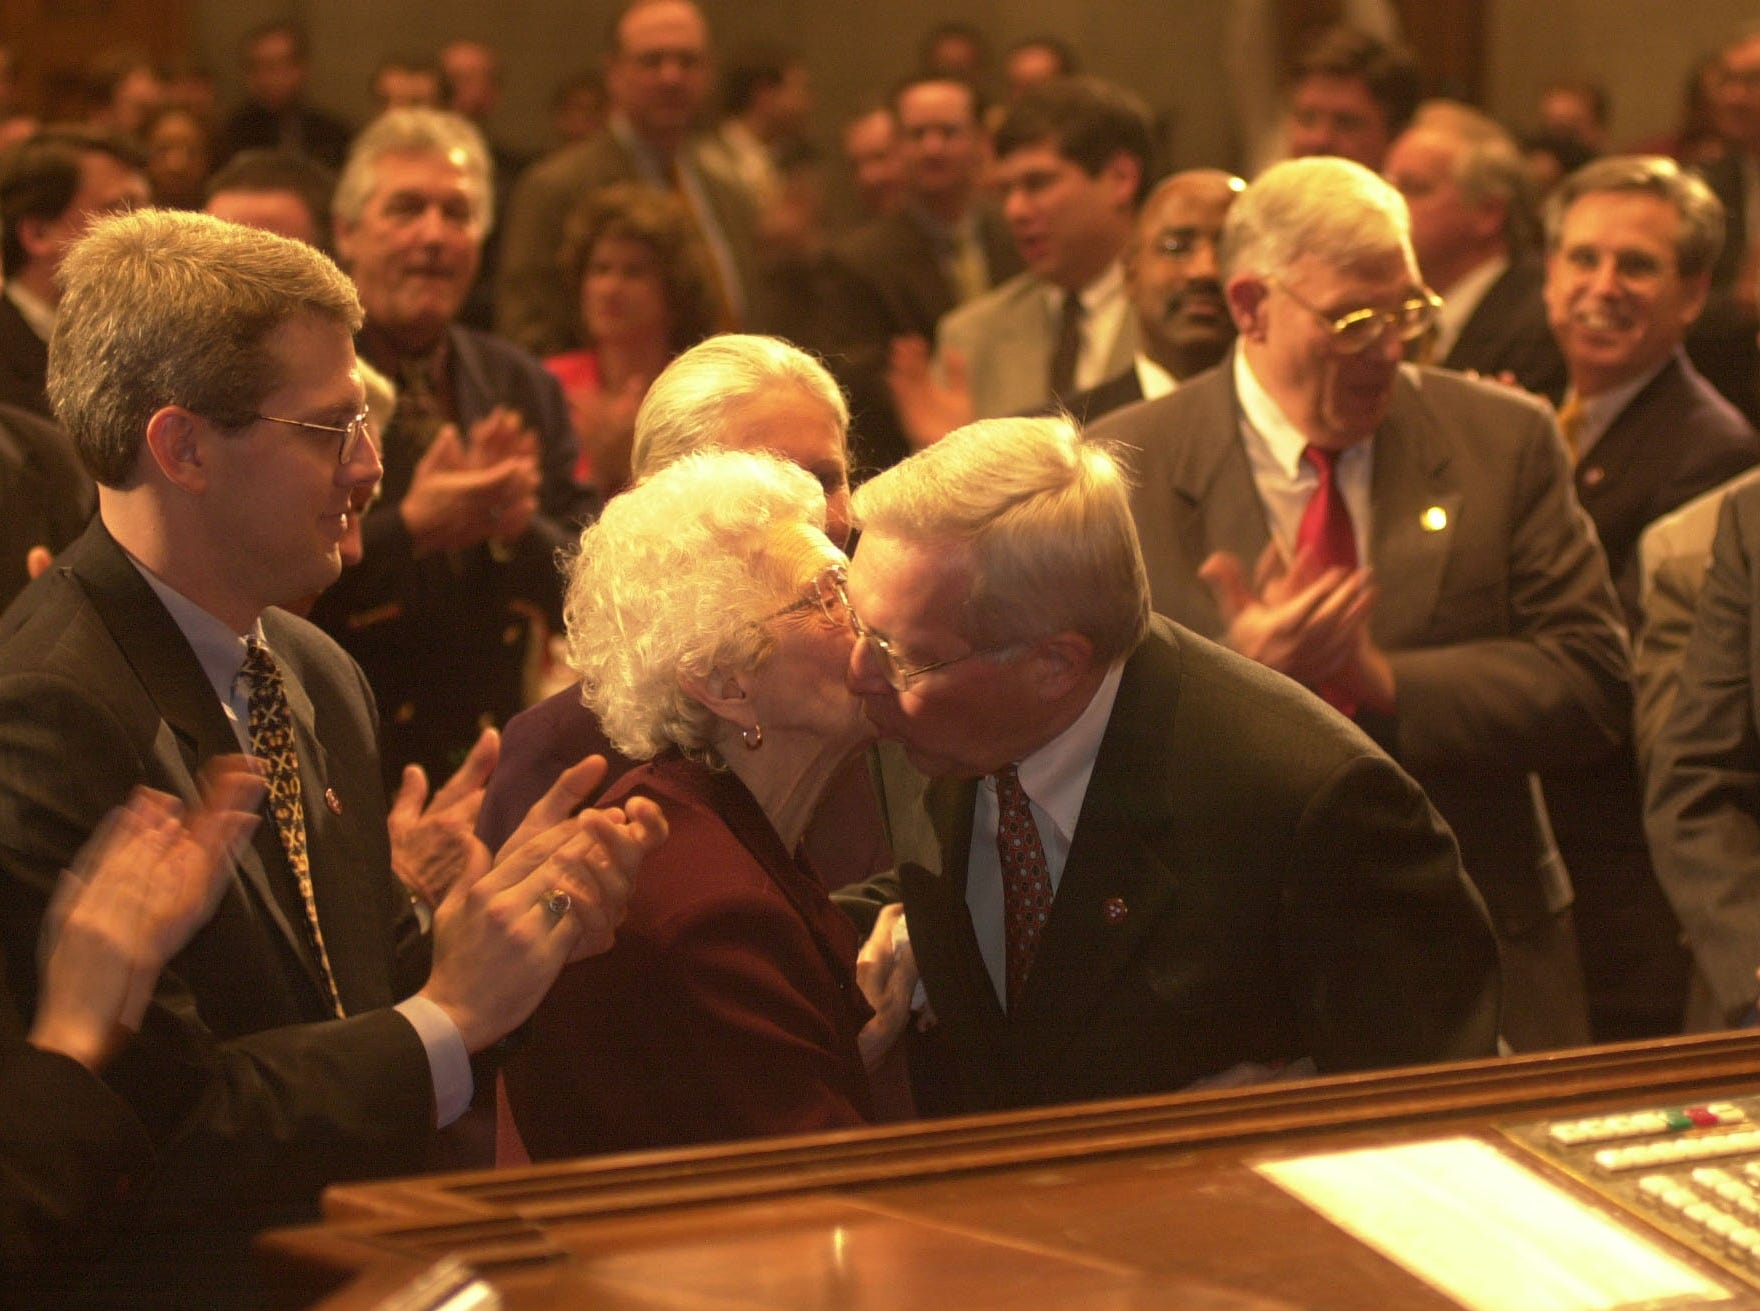 Tennessee Govenor Don Sundquist gives a kiss to his mother, Louise Sundquist, as he enters the House Chambers for his annual State of the State address Monday night.